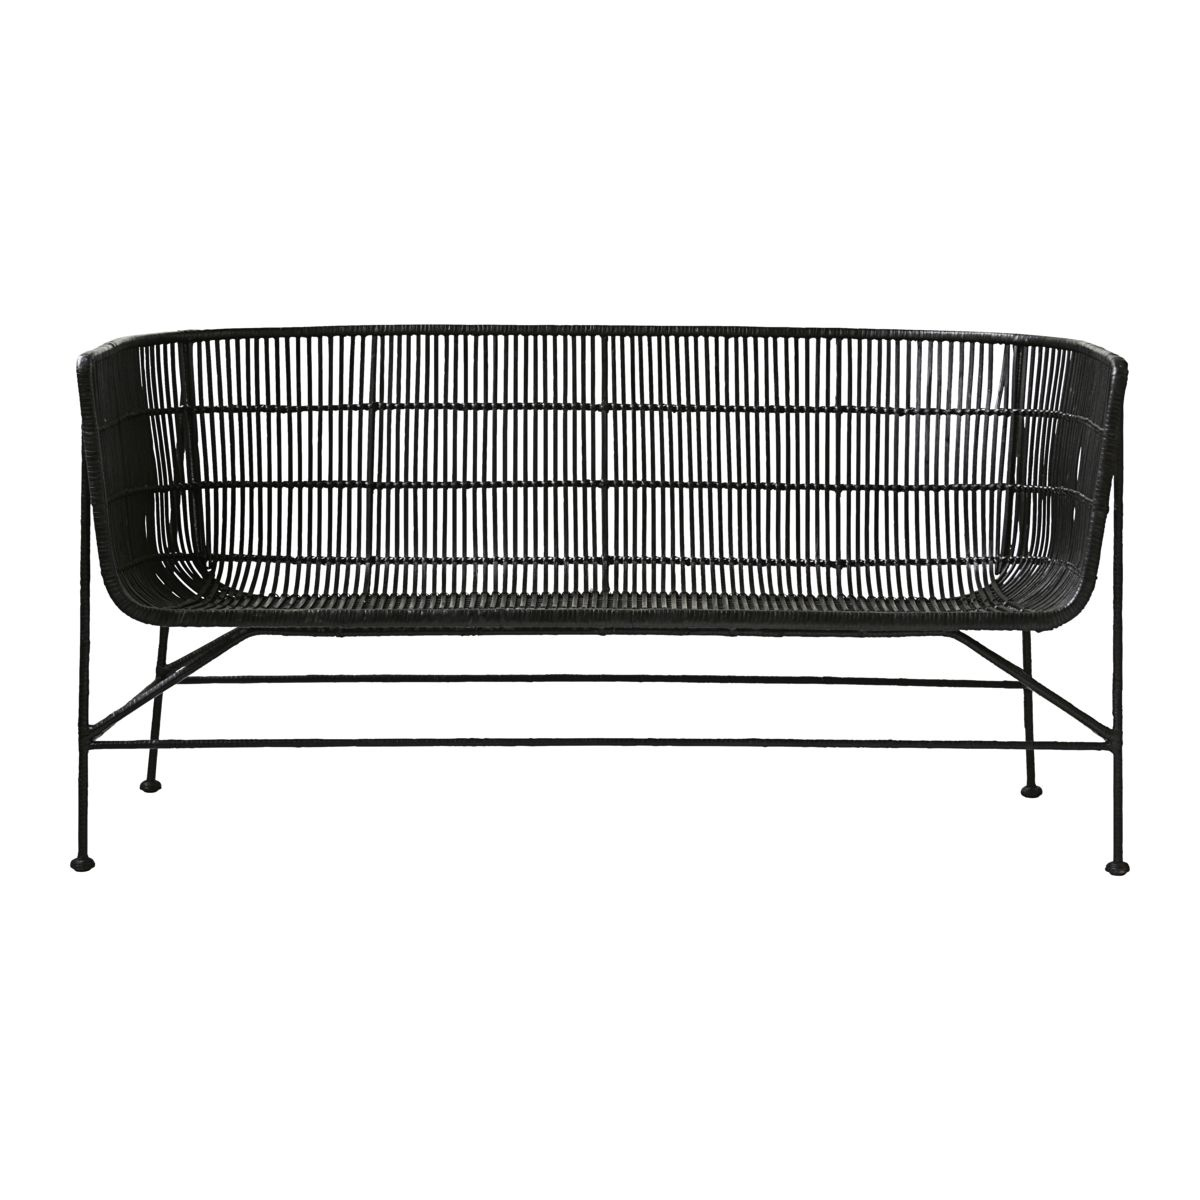 House Doctor Black Rattan bench / Sofa - natural - 140cm - House Doctor